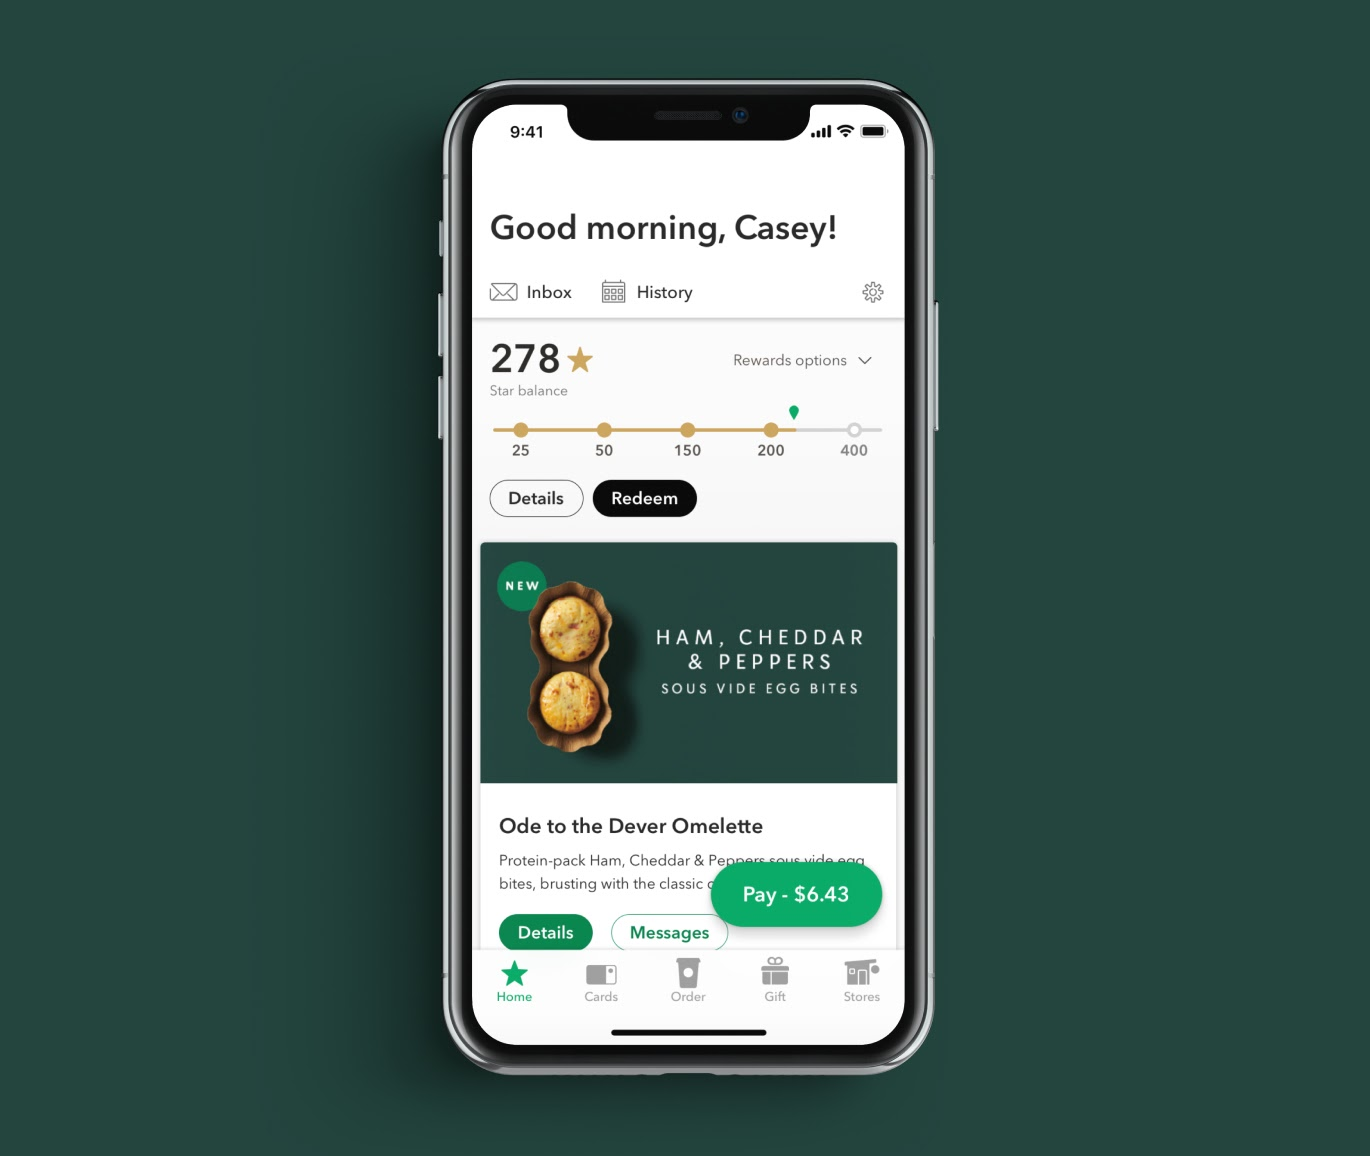 Starbucks offers one of the best-known loyalty program. It is beautifully designed and implemented.